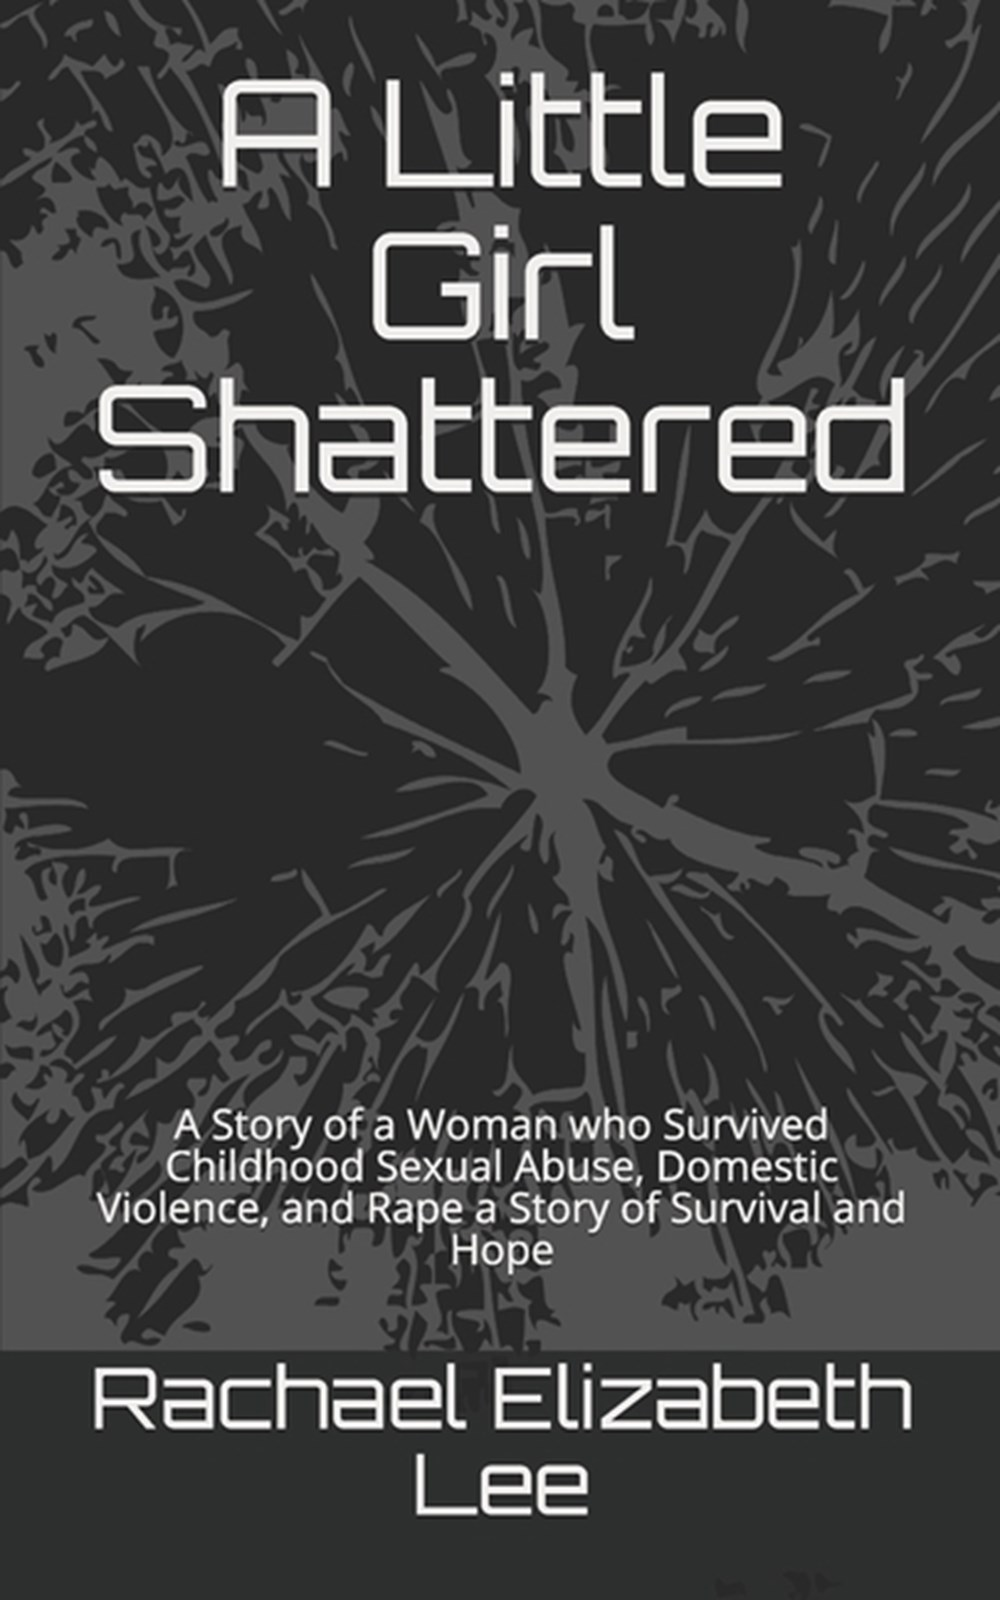 Little Girl Shattered A Story of a Woman who Survived Childhood Sexual Abuse, Domestic Violence, and